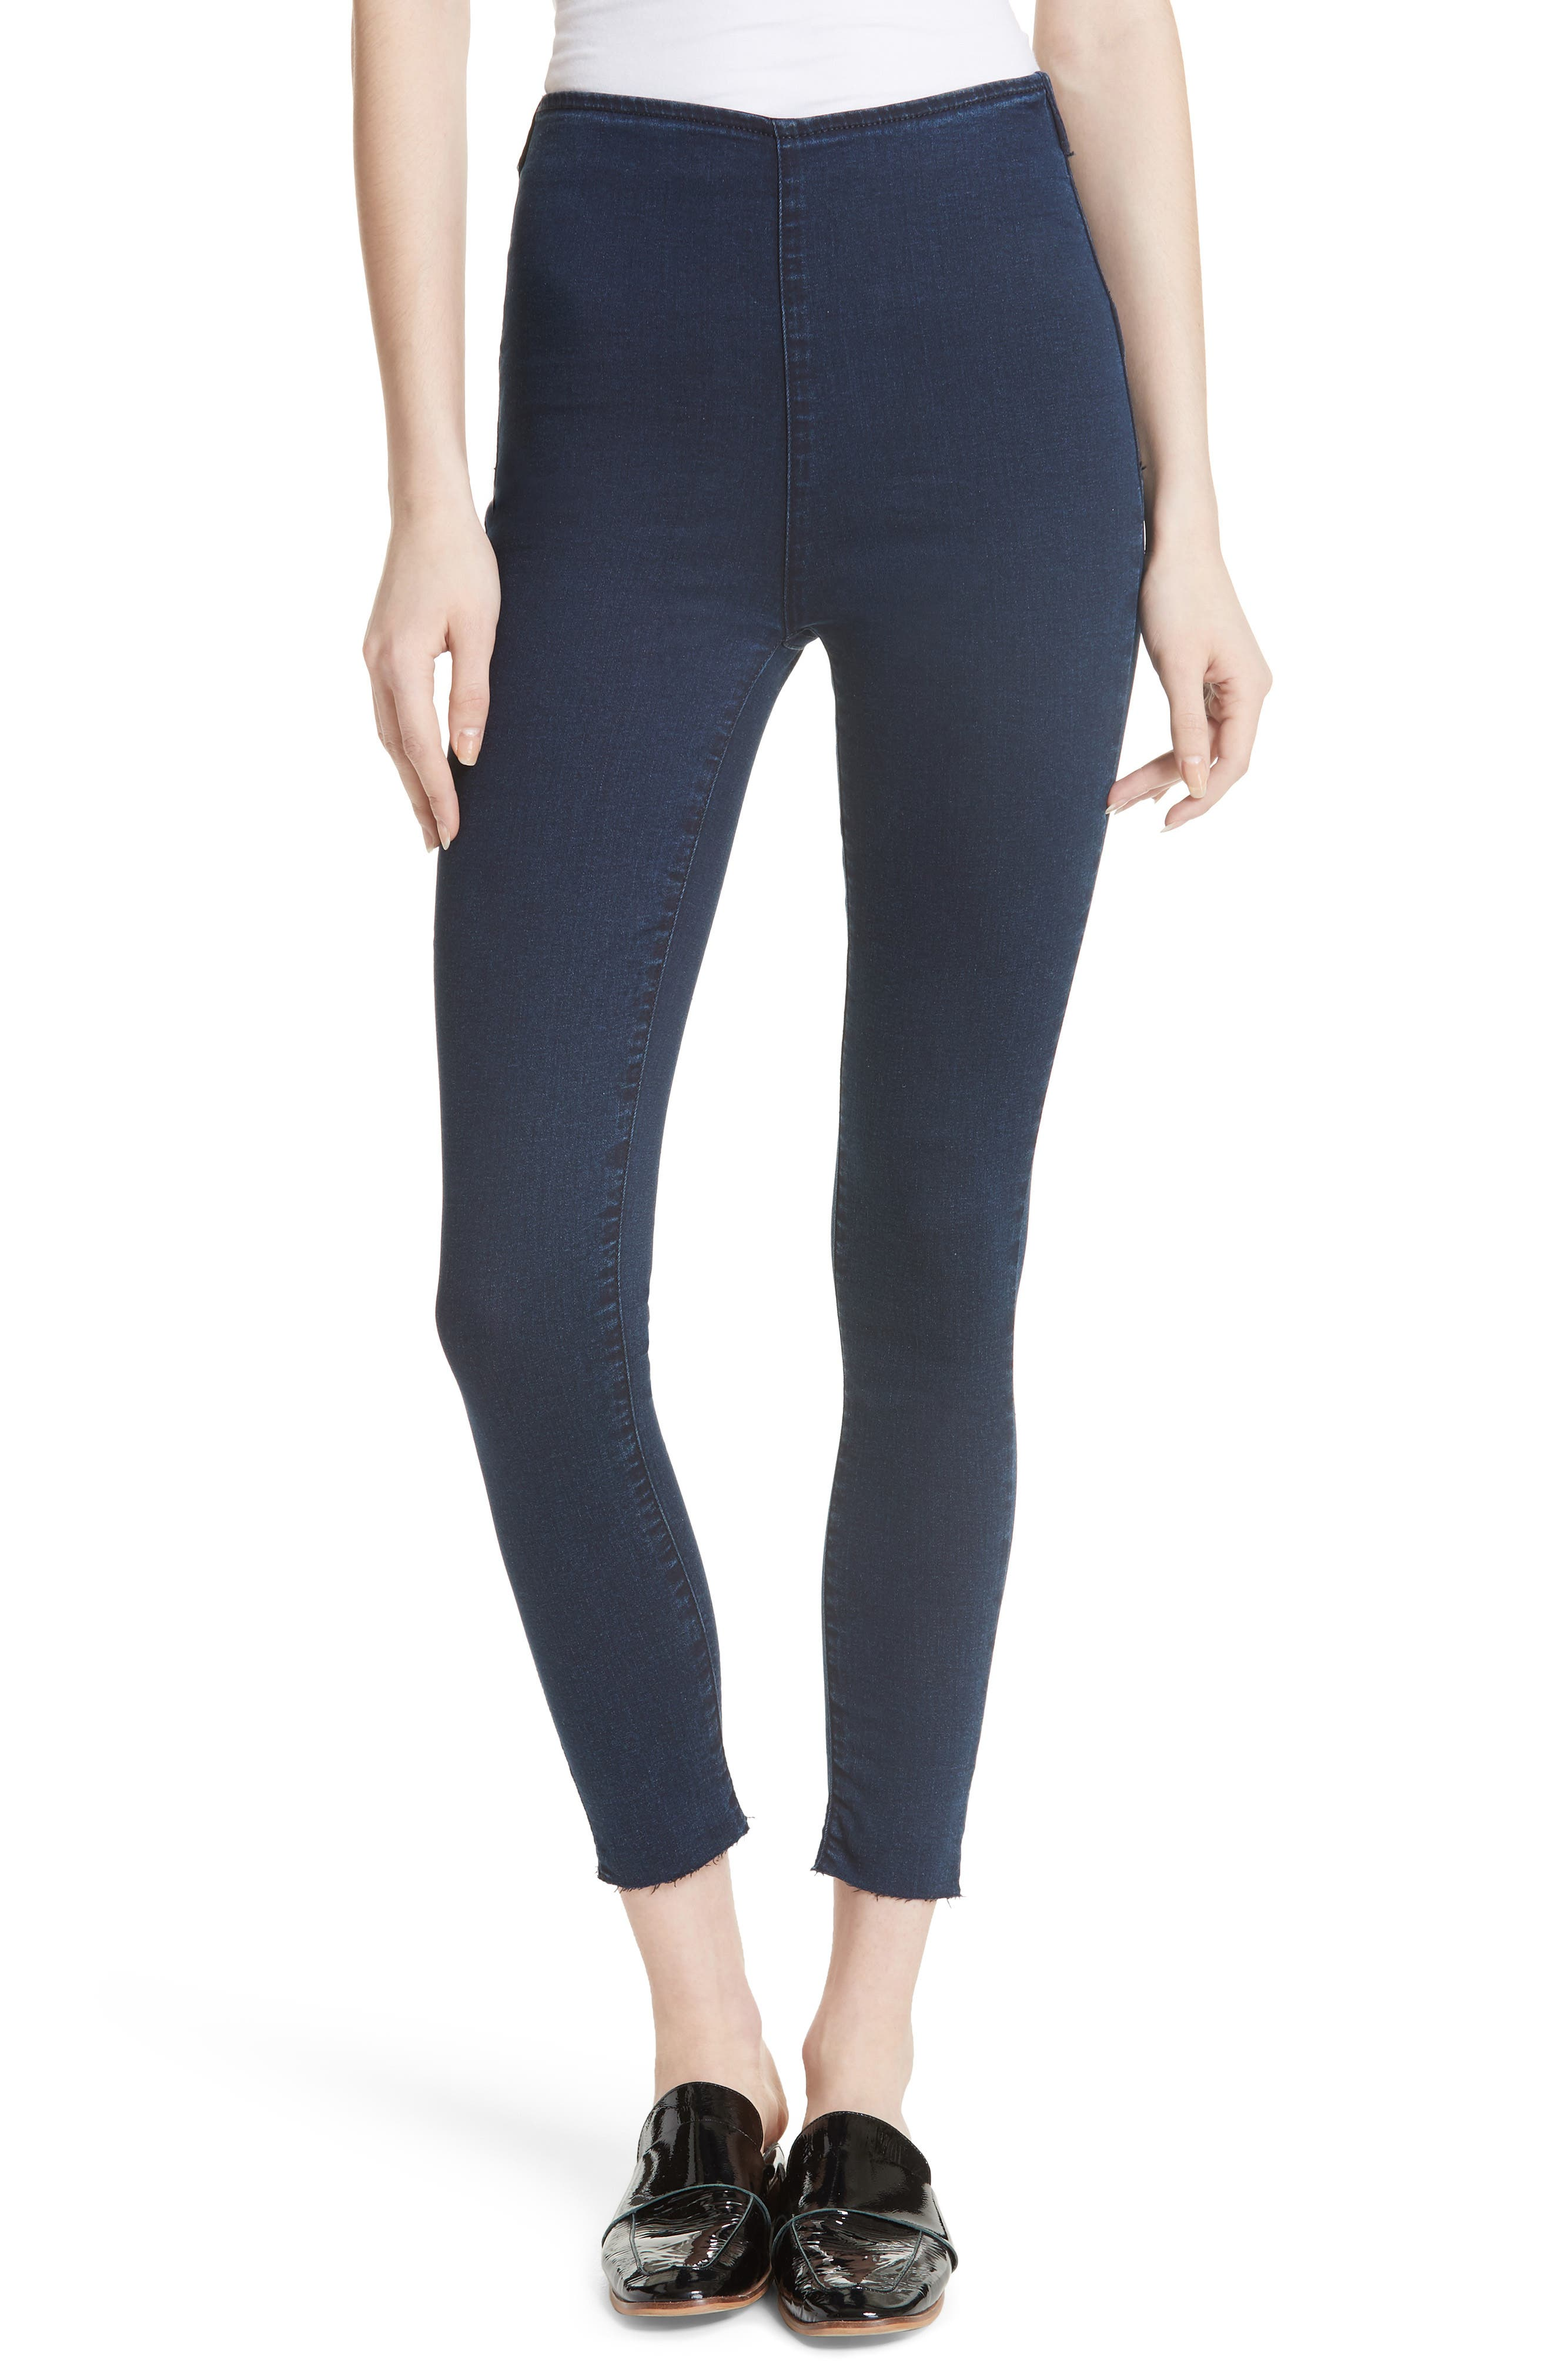 Easy Goes It Leggings,                             Main thumbnail 1, color,                             Dark Denim